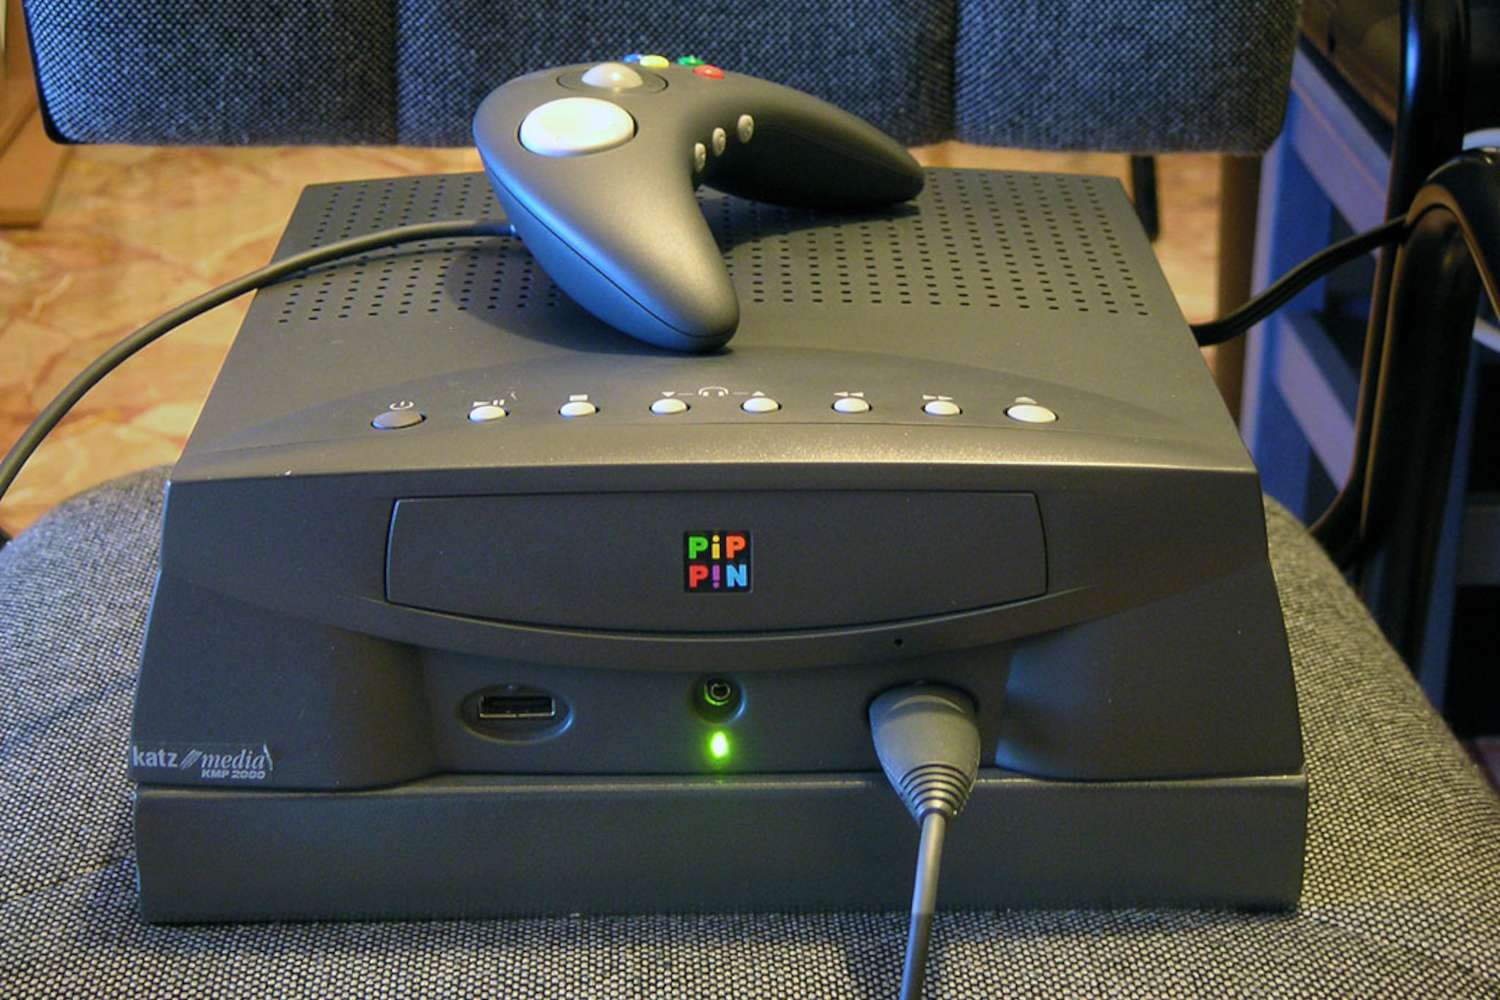 Apple Pippin home gaming console from the front